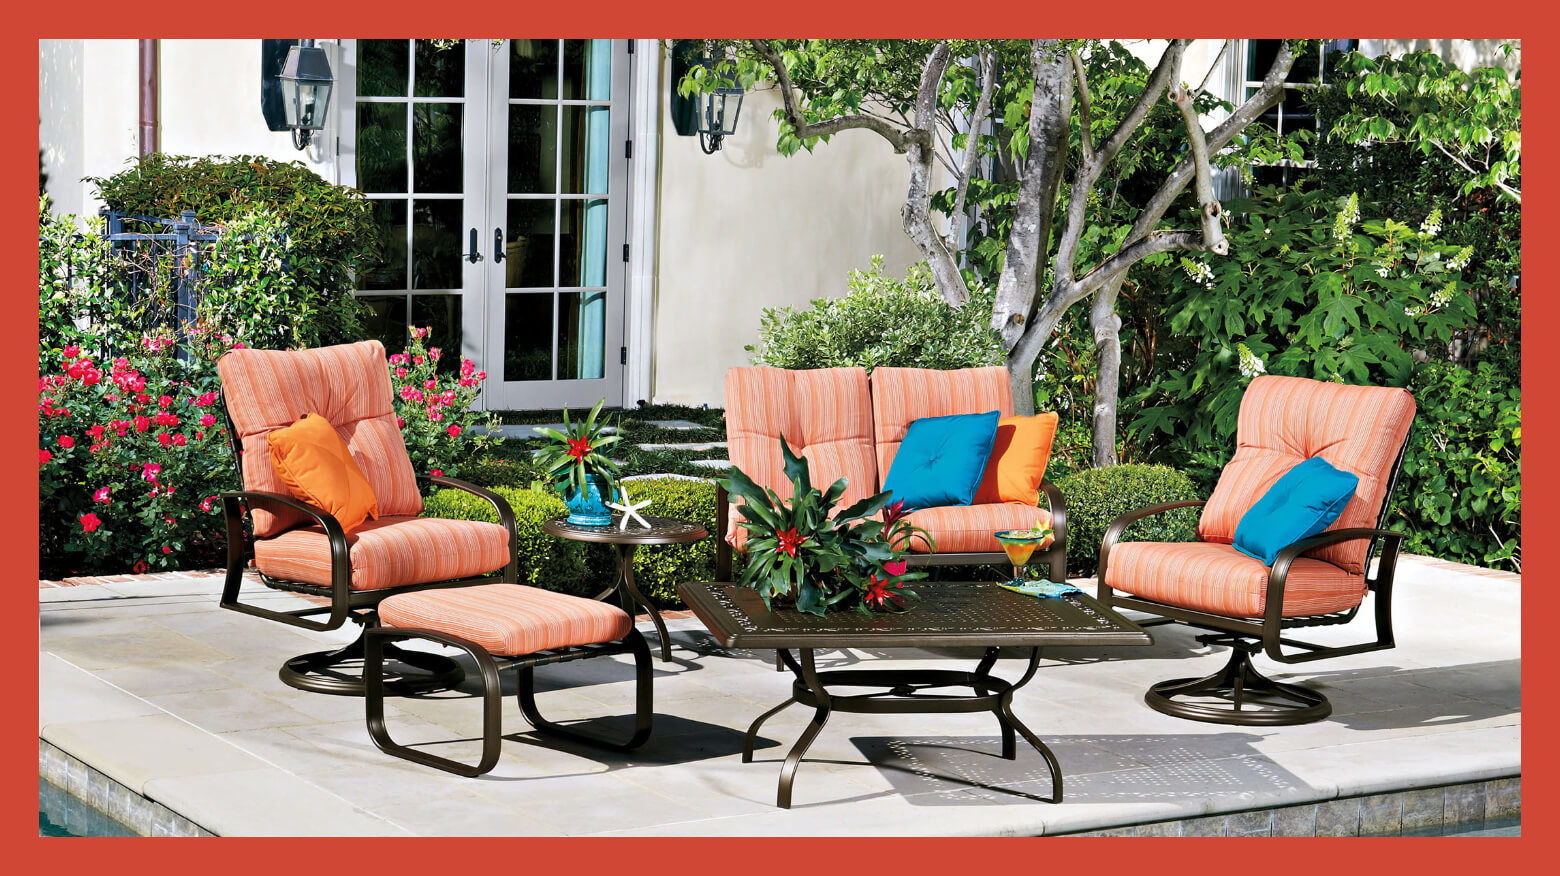 Woodard Patio Furniture Reviews Is it worth it? : patio furniture boca raton - thejasonspencertrust.org